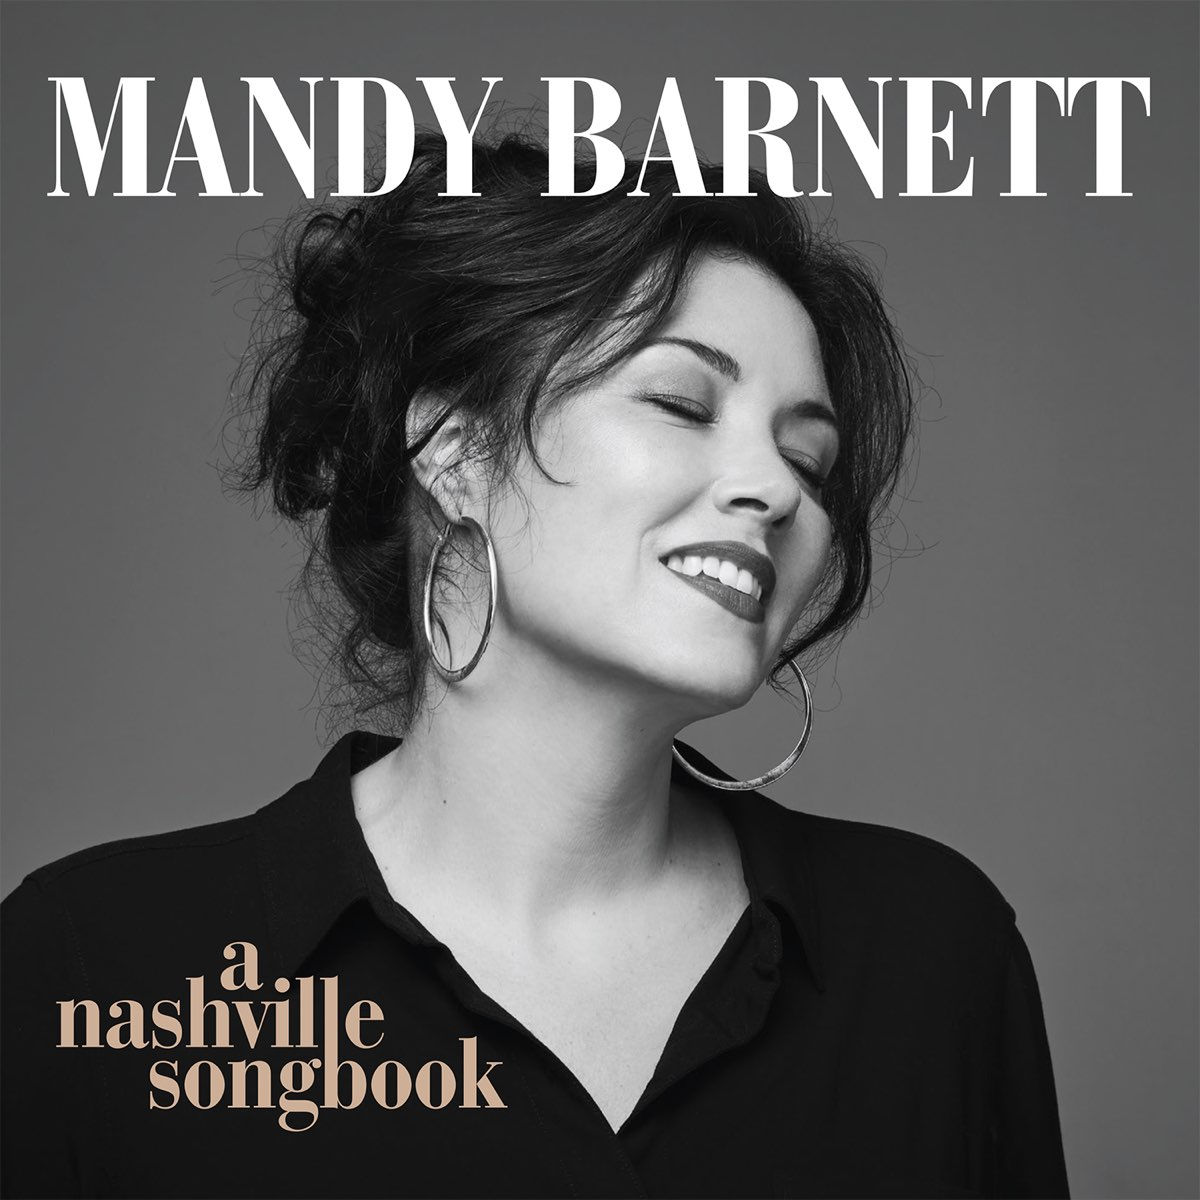 A Nashville Songbook Image